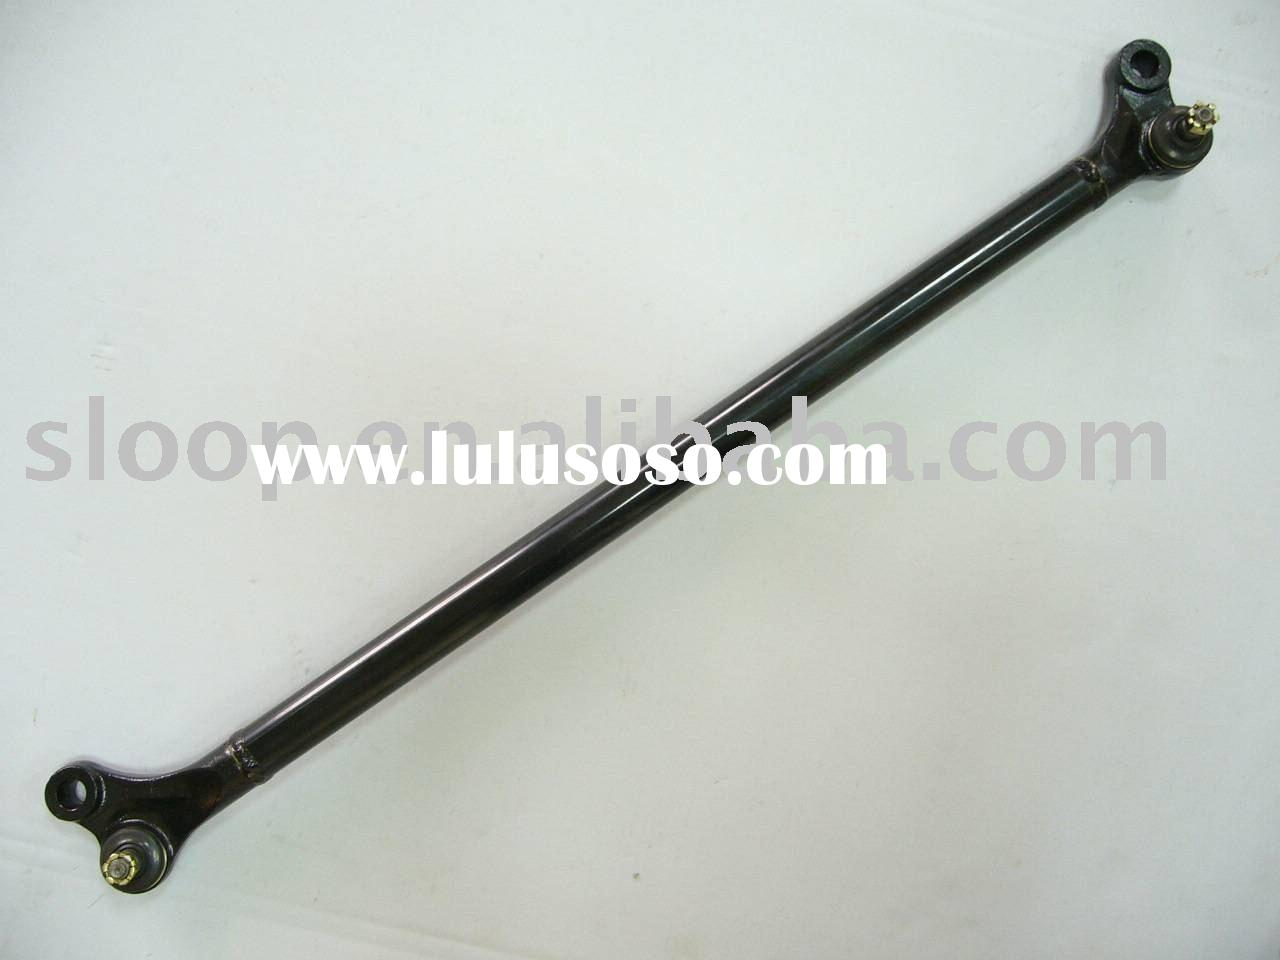 suspension parts - CENTER LINK (auto spare parts) 48560-3S525